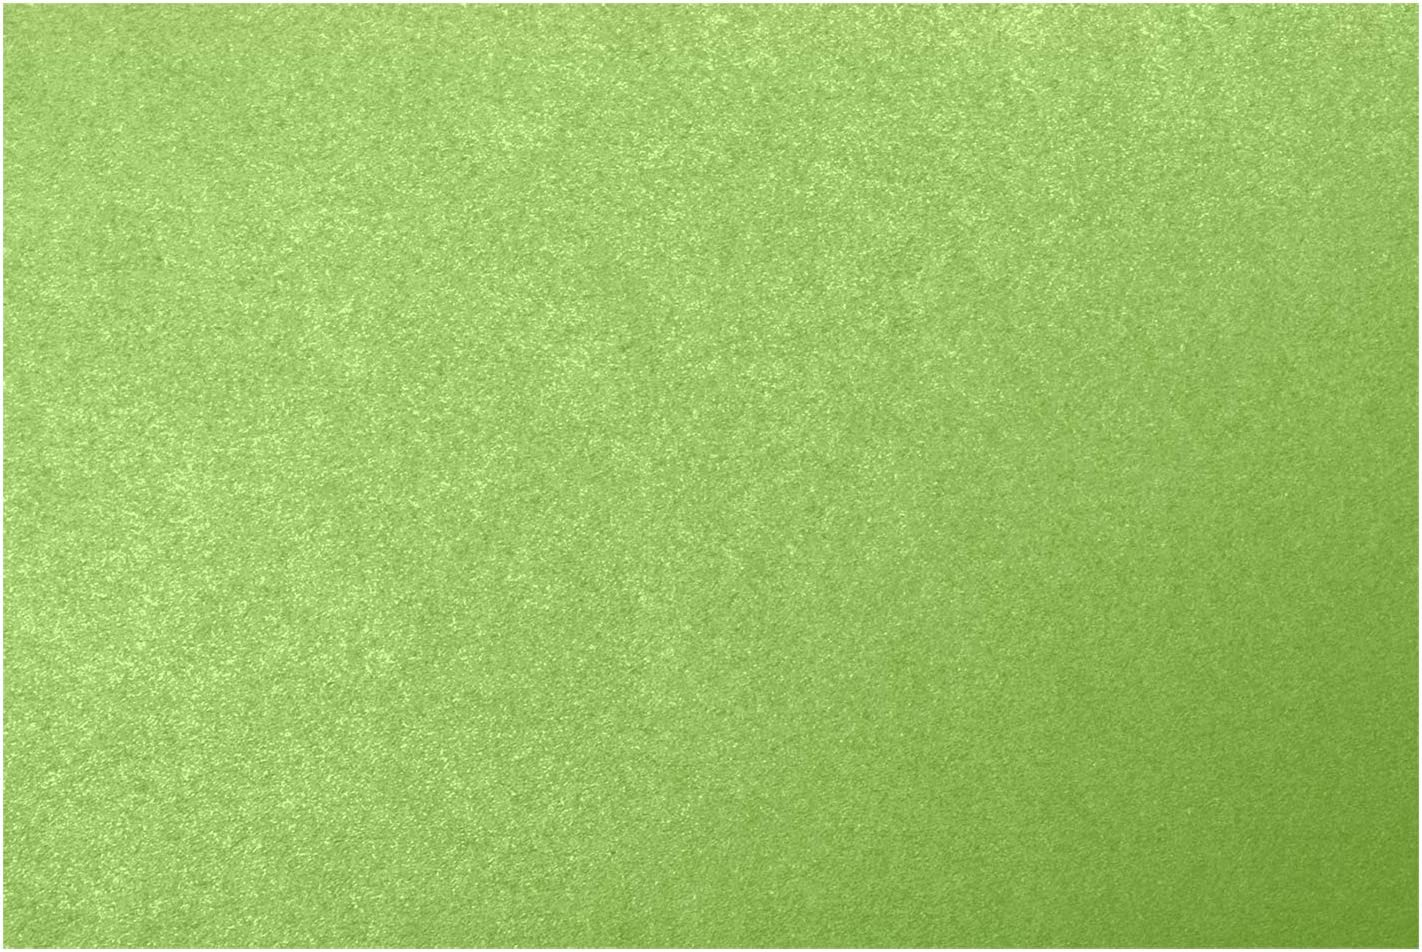 LUXPaper A7 Flat Cards in 105lb Fairway Metallic for Crafts and Office Supplies Cards 250 Pack Scrapbook Green